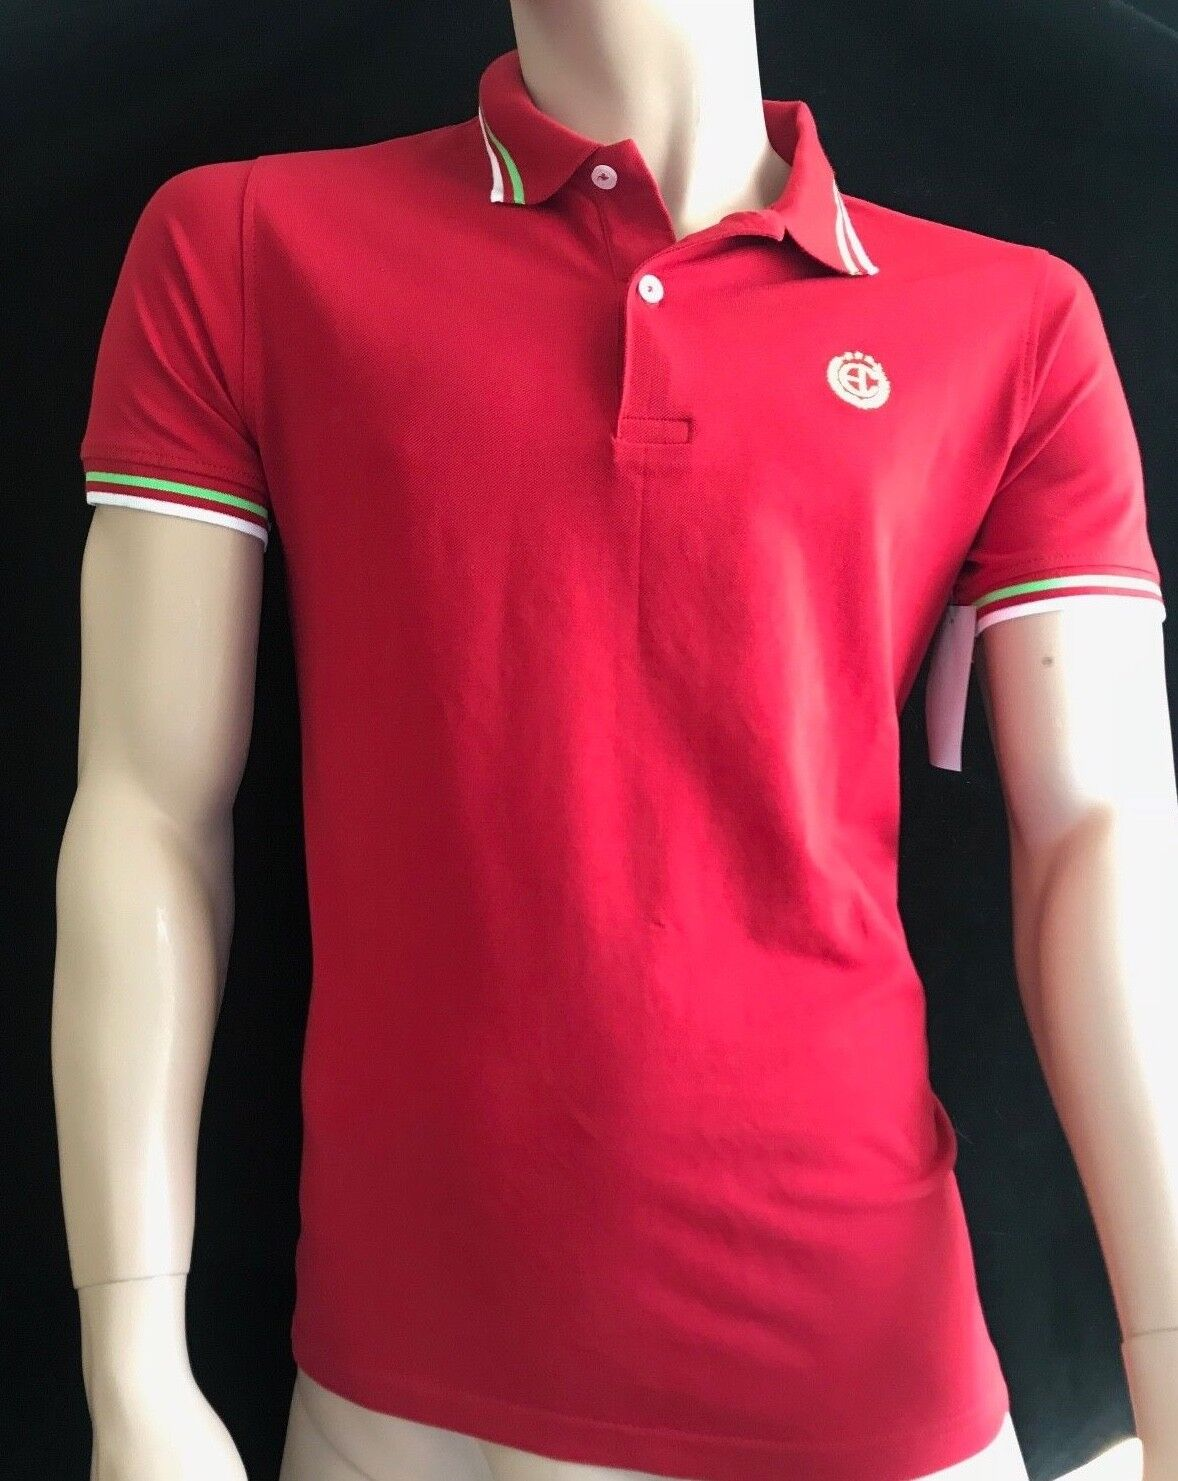 BNWT ENRICO COVERI Sportswear Stylish Polo Hemd Größe M see below SAVE